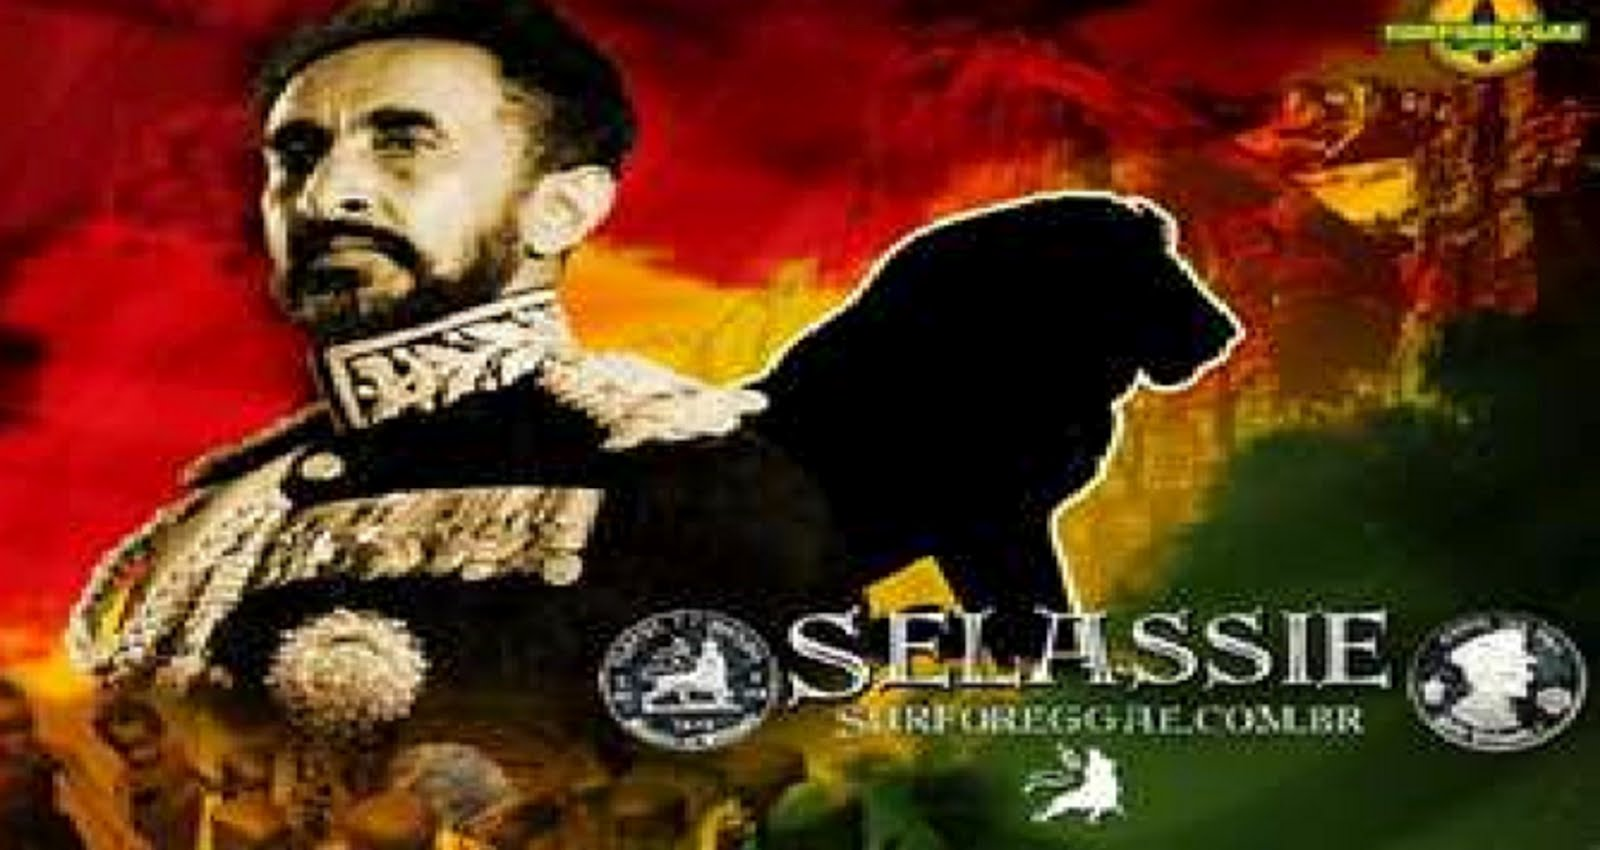 haile selassie i lion shola adebowale com africa in the ...